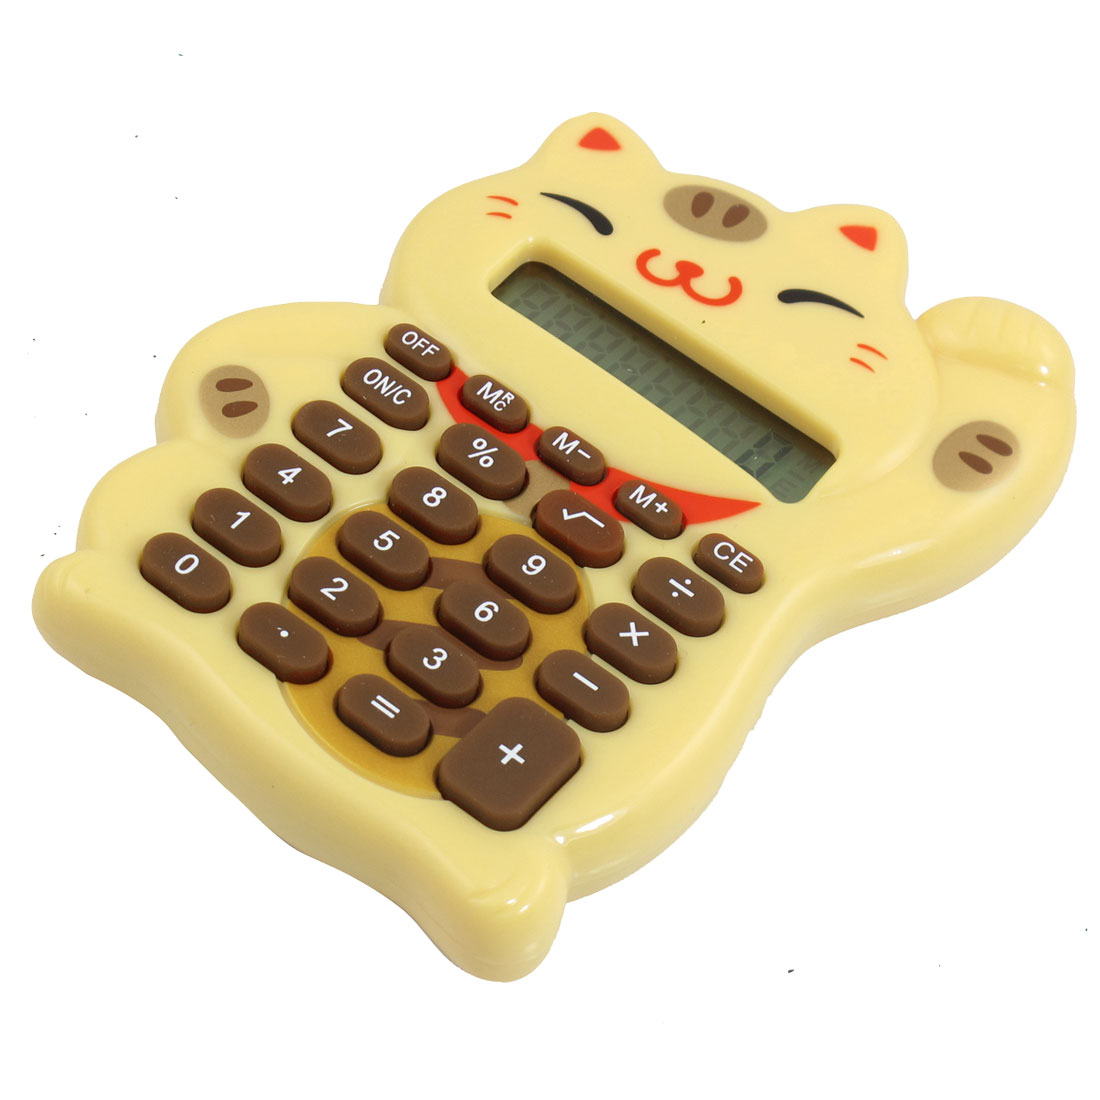 Wheat Lucky Cat Shaped 8 Digits LCD Display Electronic Calculator